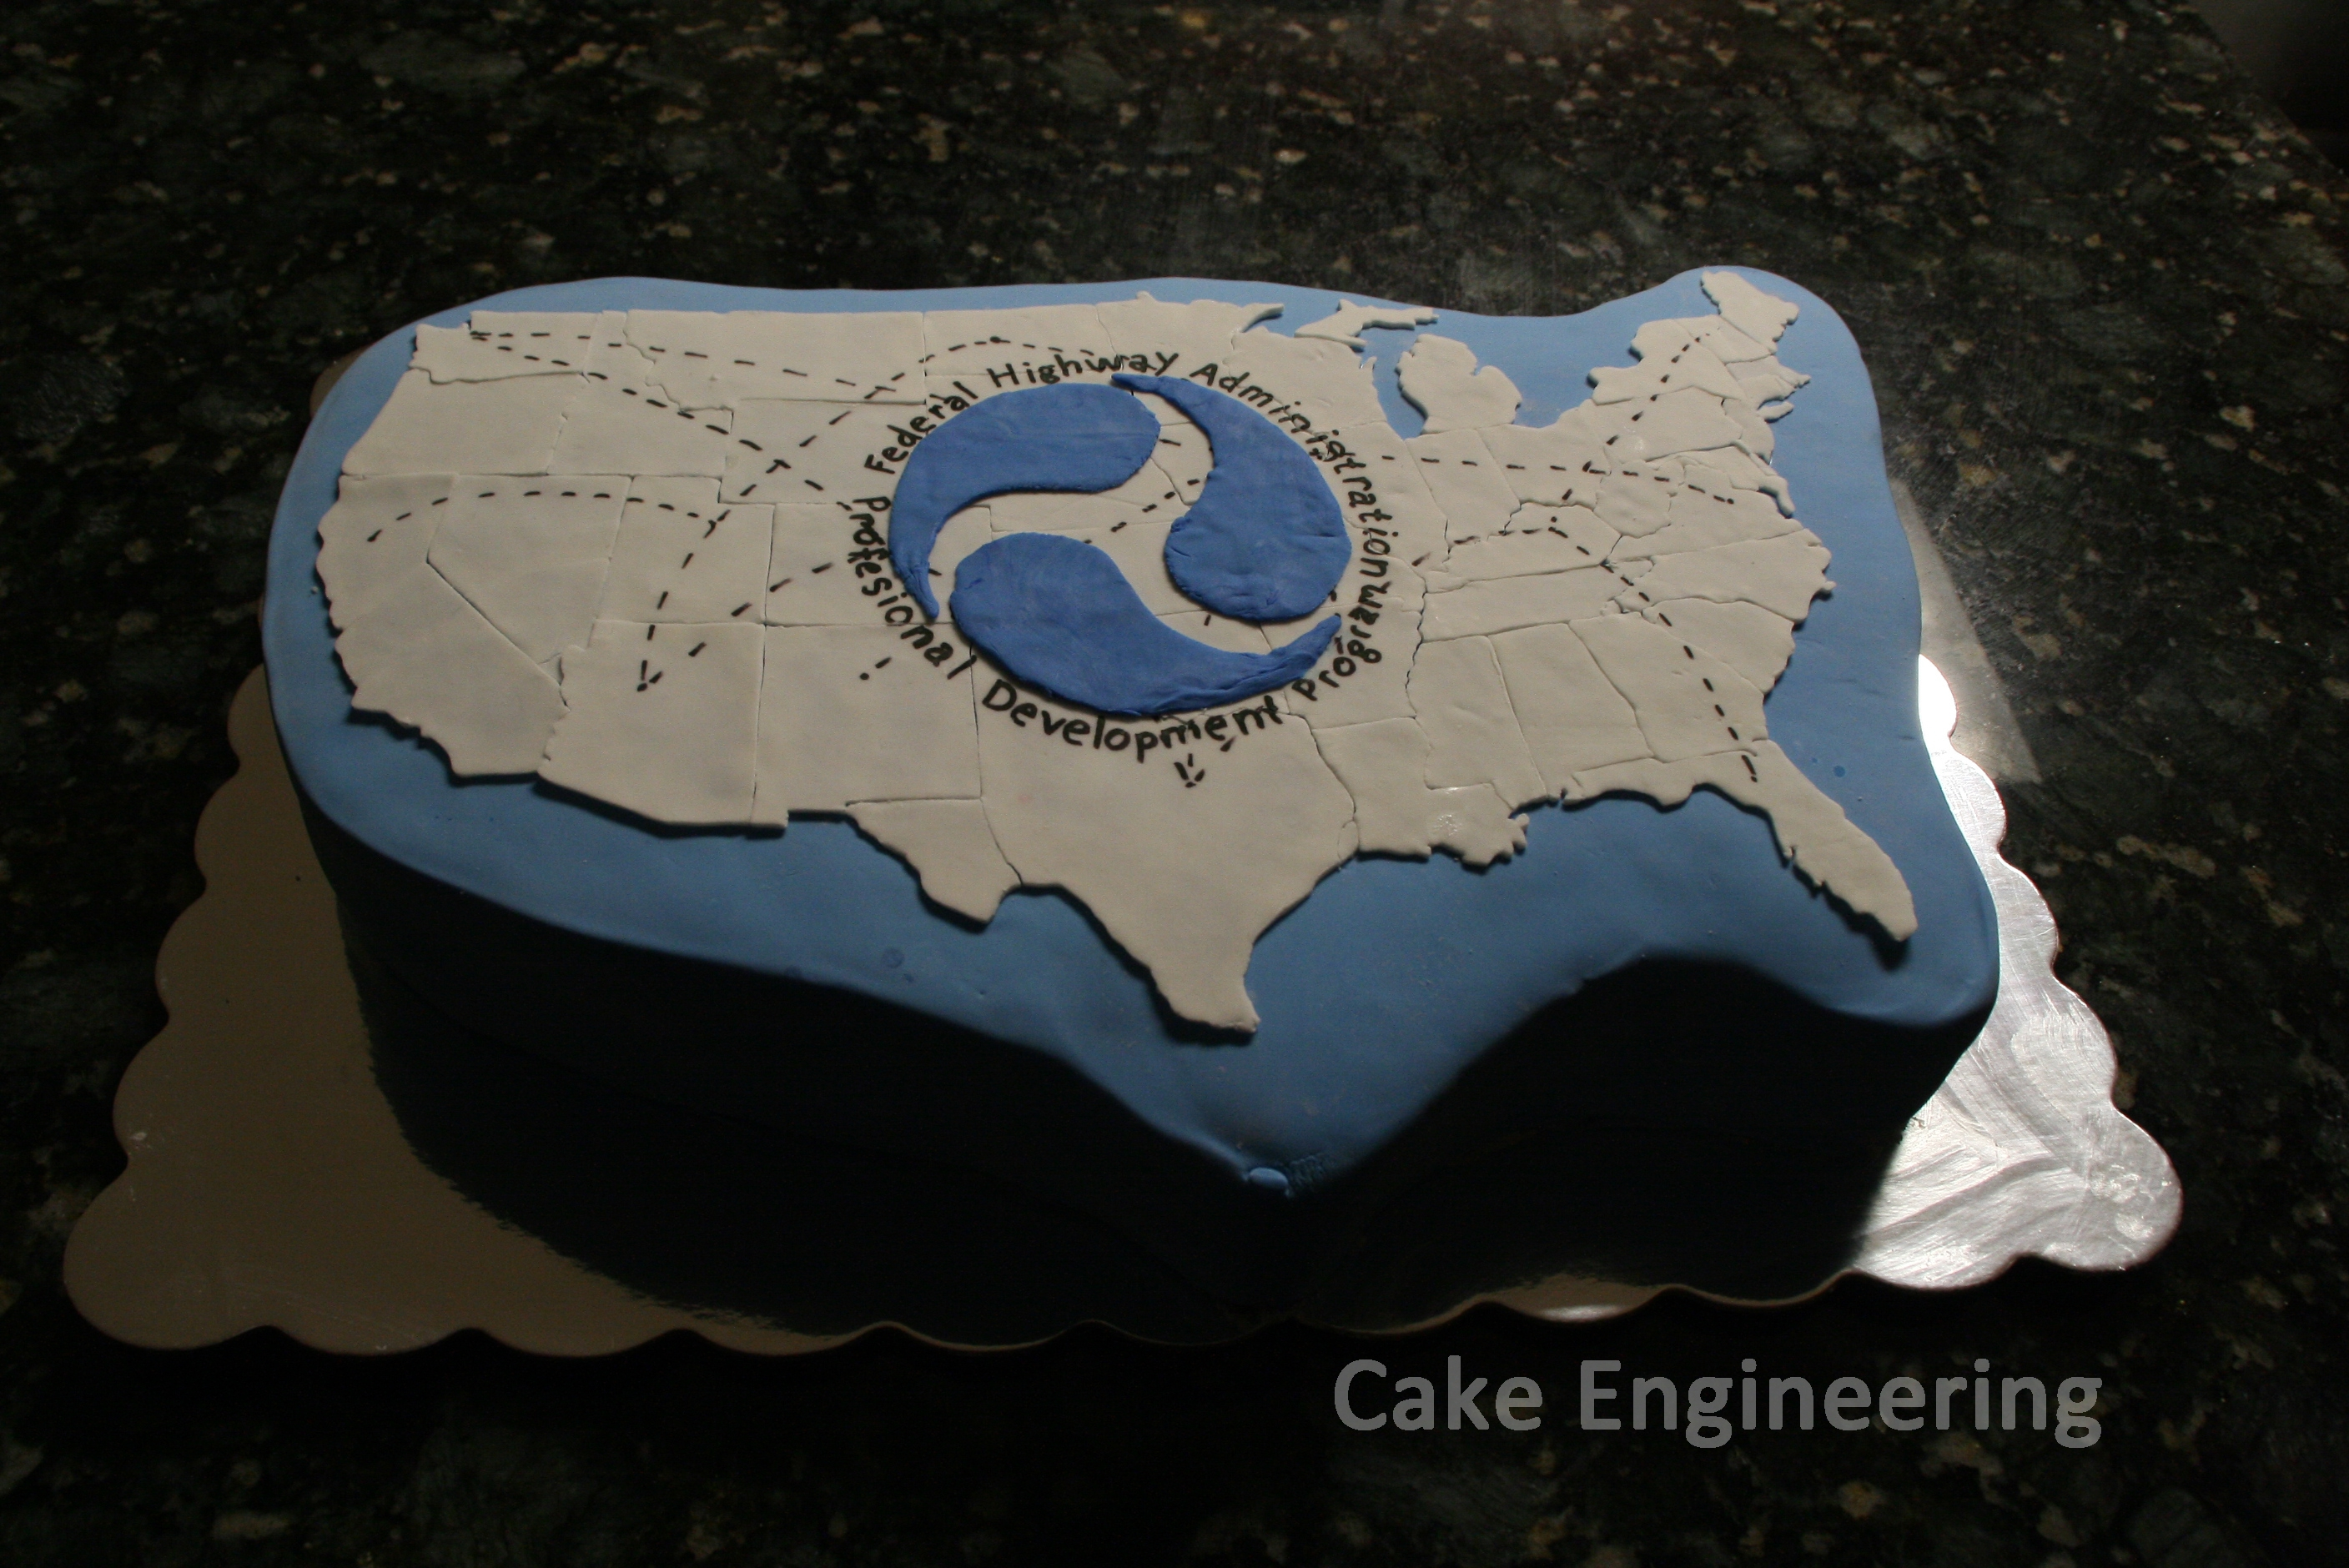 Fhwa - Professional Development Program Cake Half chocolate half vanilla cake with fondant decorations